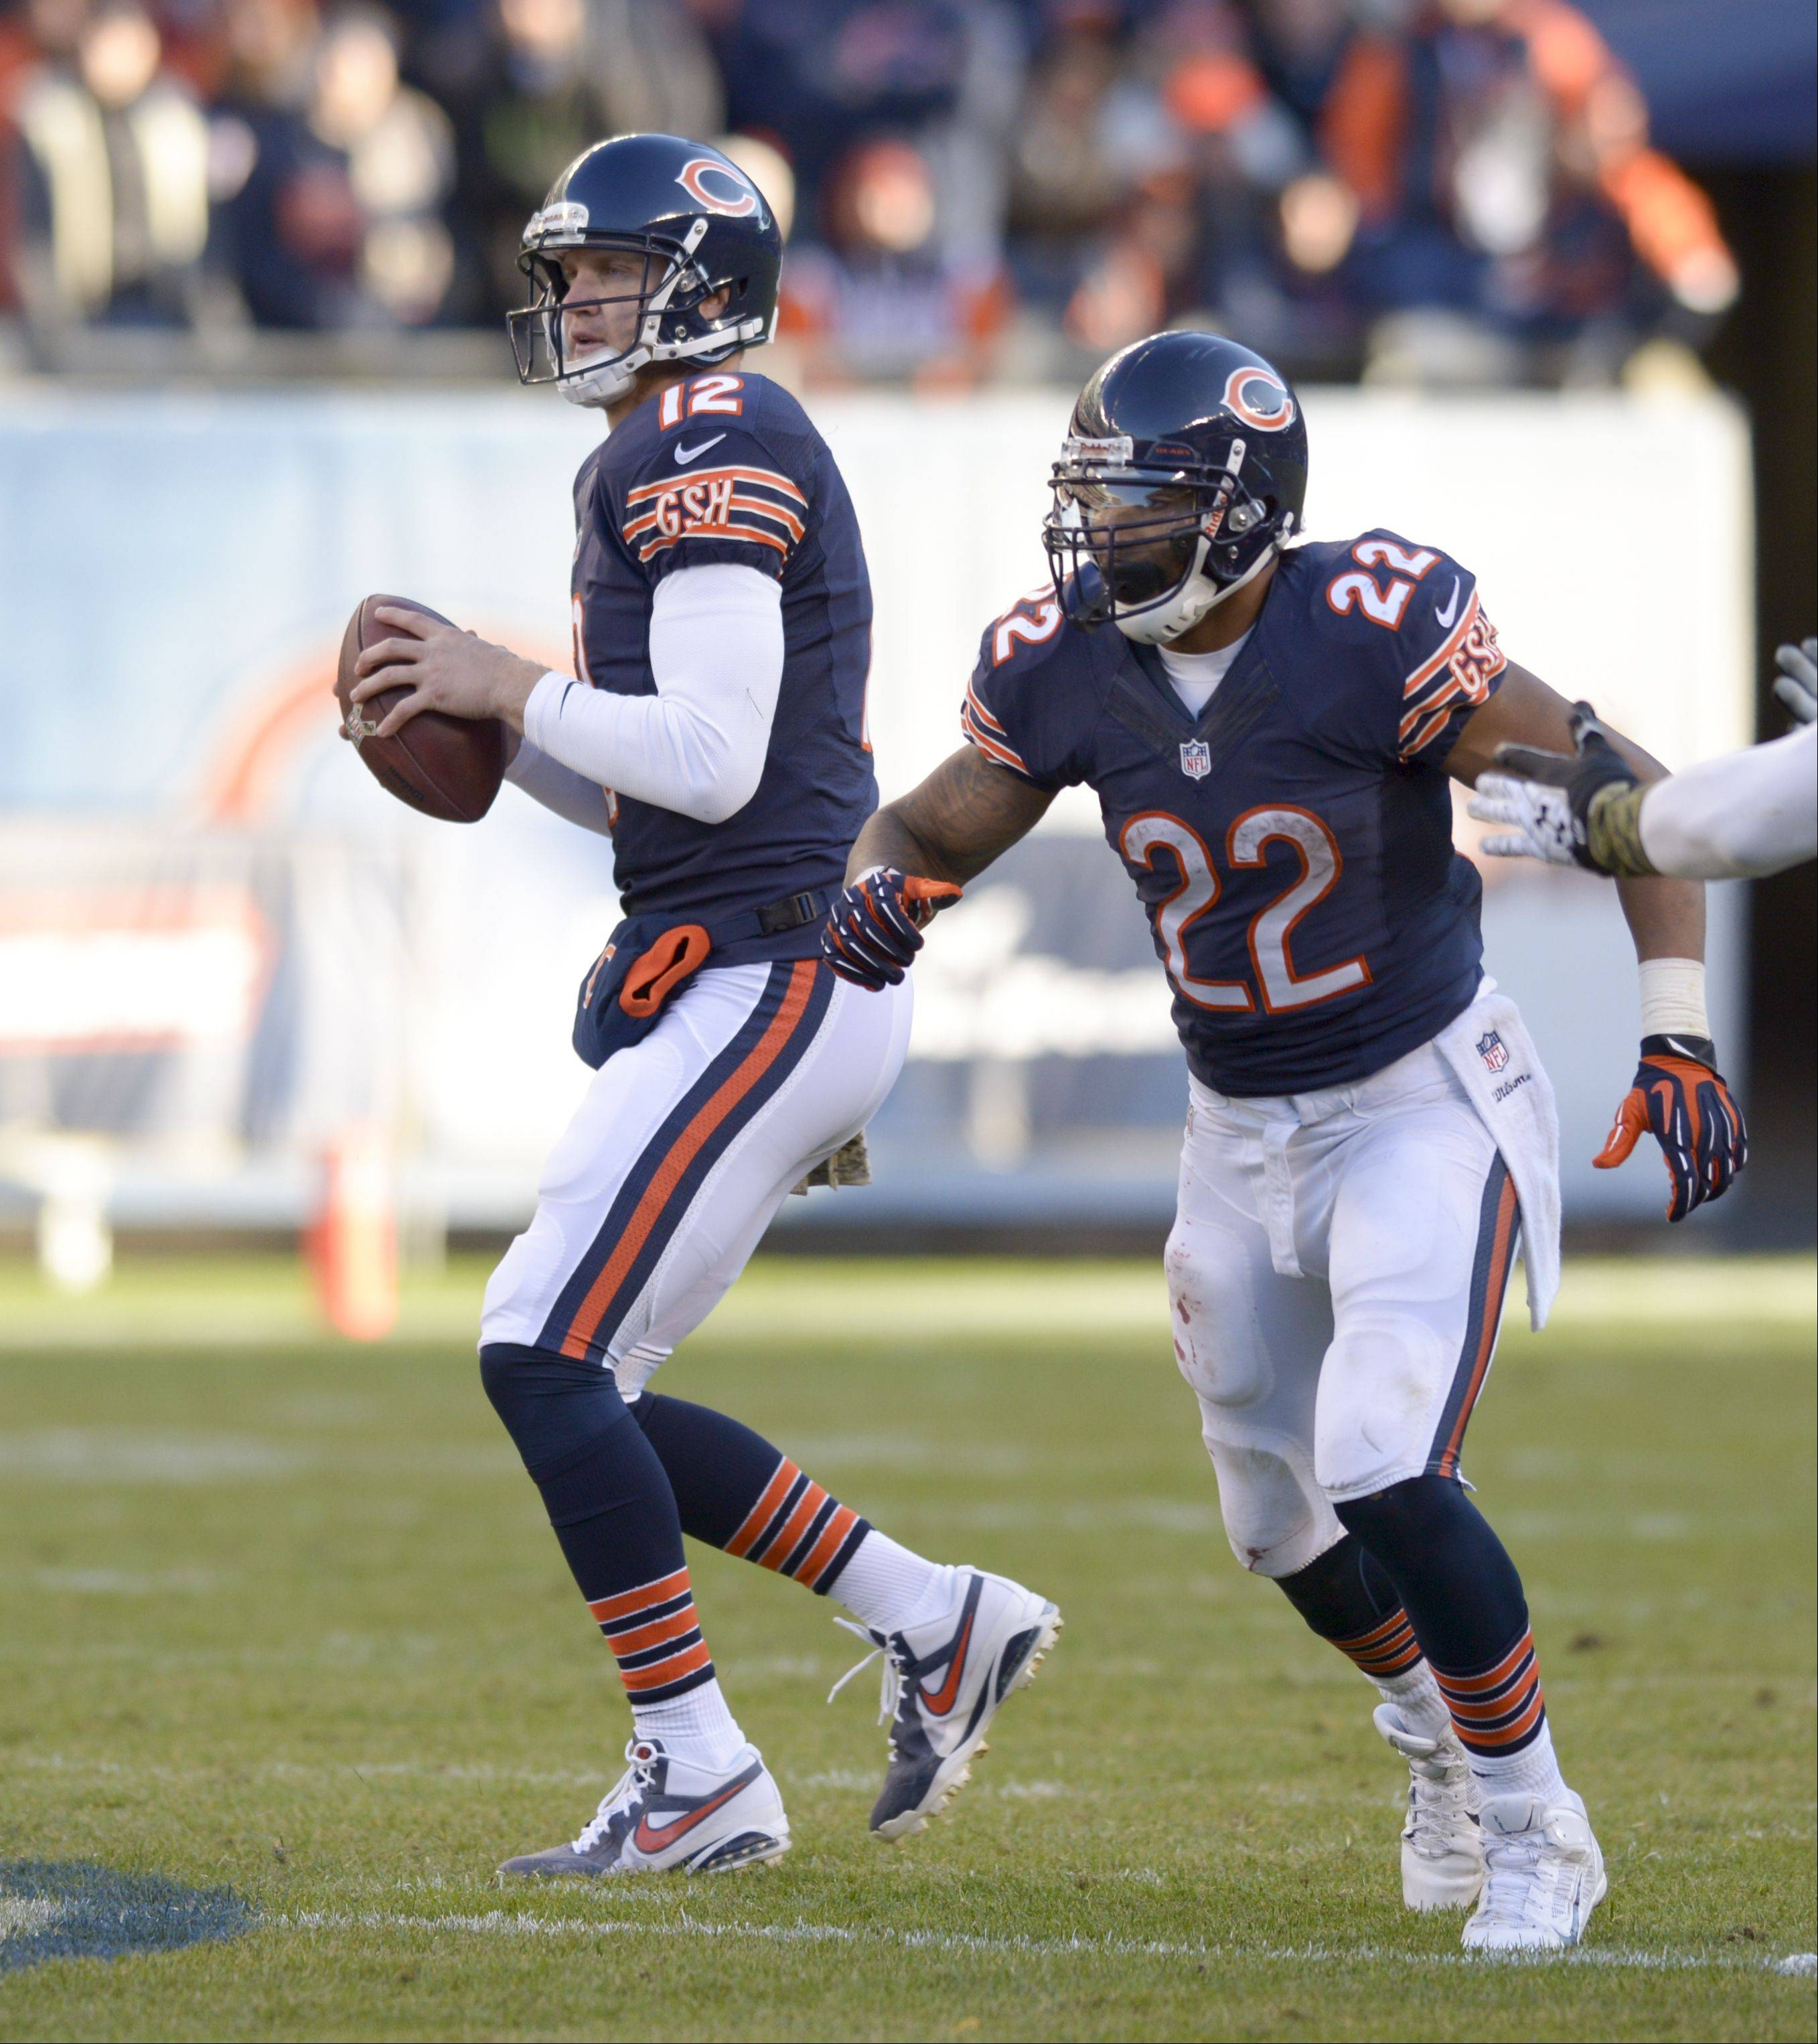 Josh McCown looks for an open receiver during the Bears' last drive Sunday.